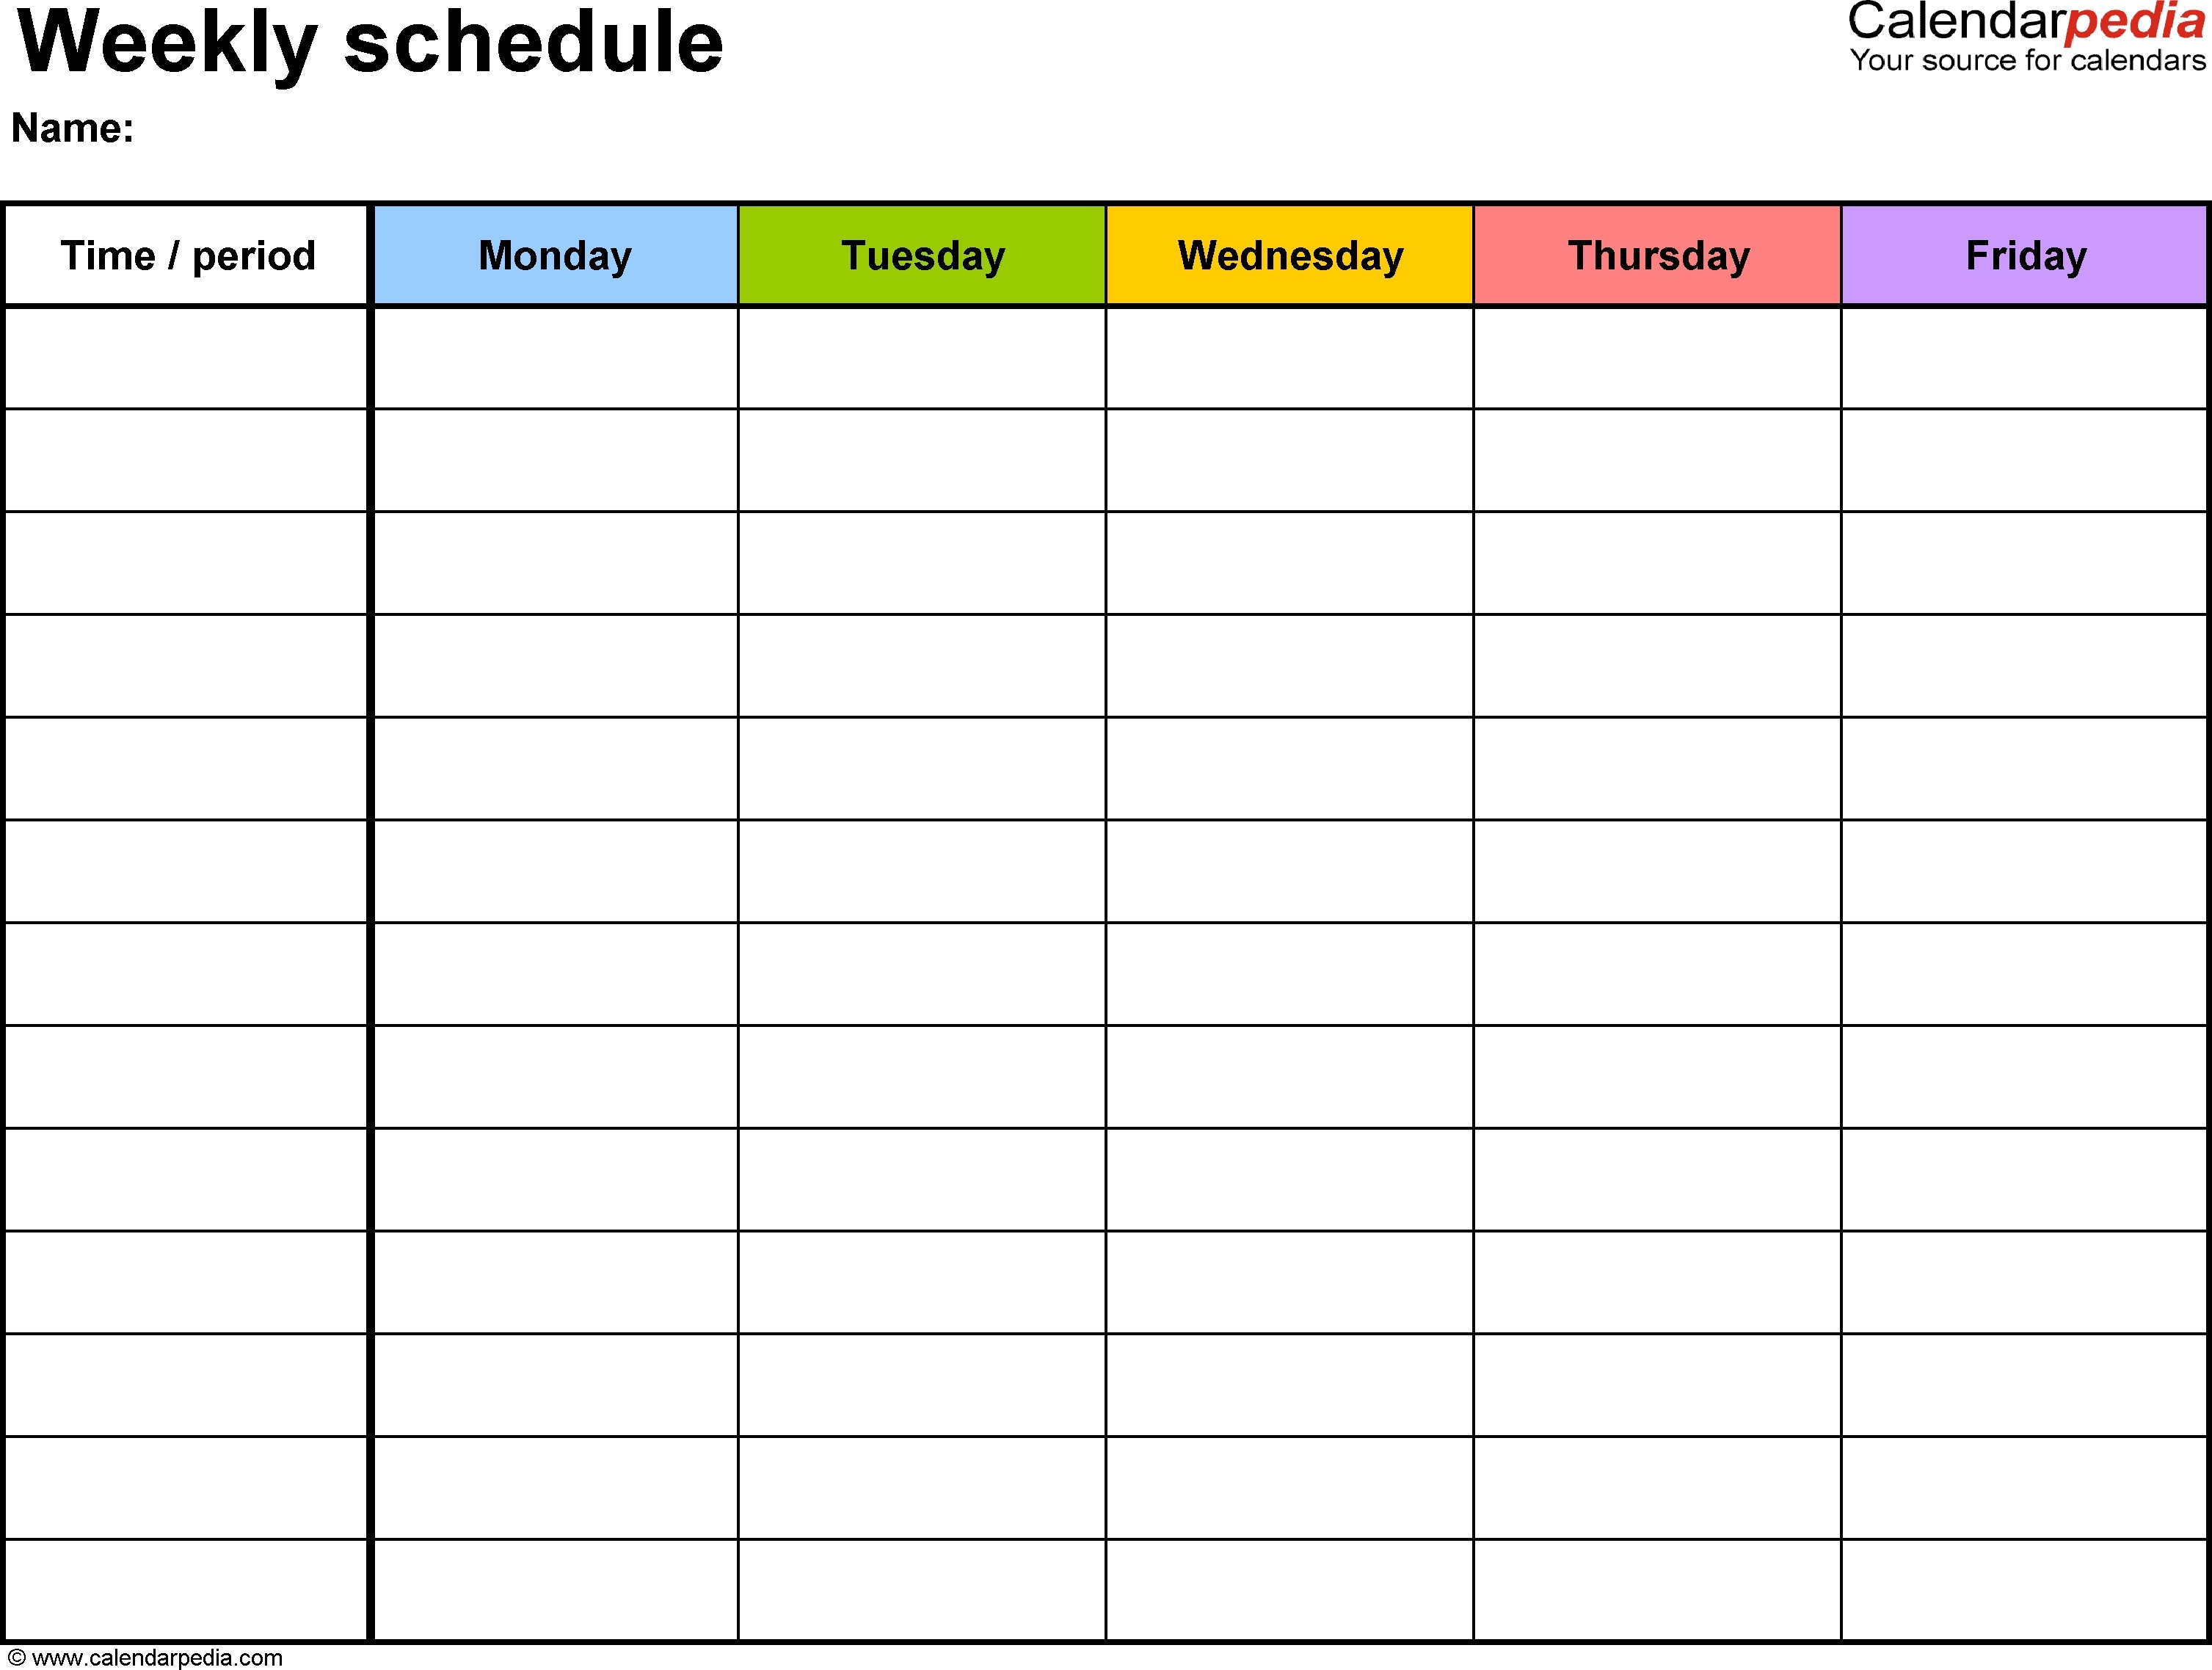 Weekly Employee Schedule Template Monday Sunday Schedule And Idea